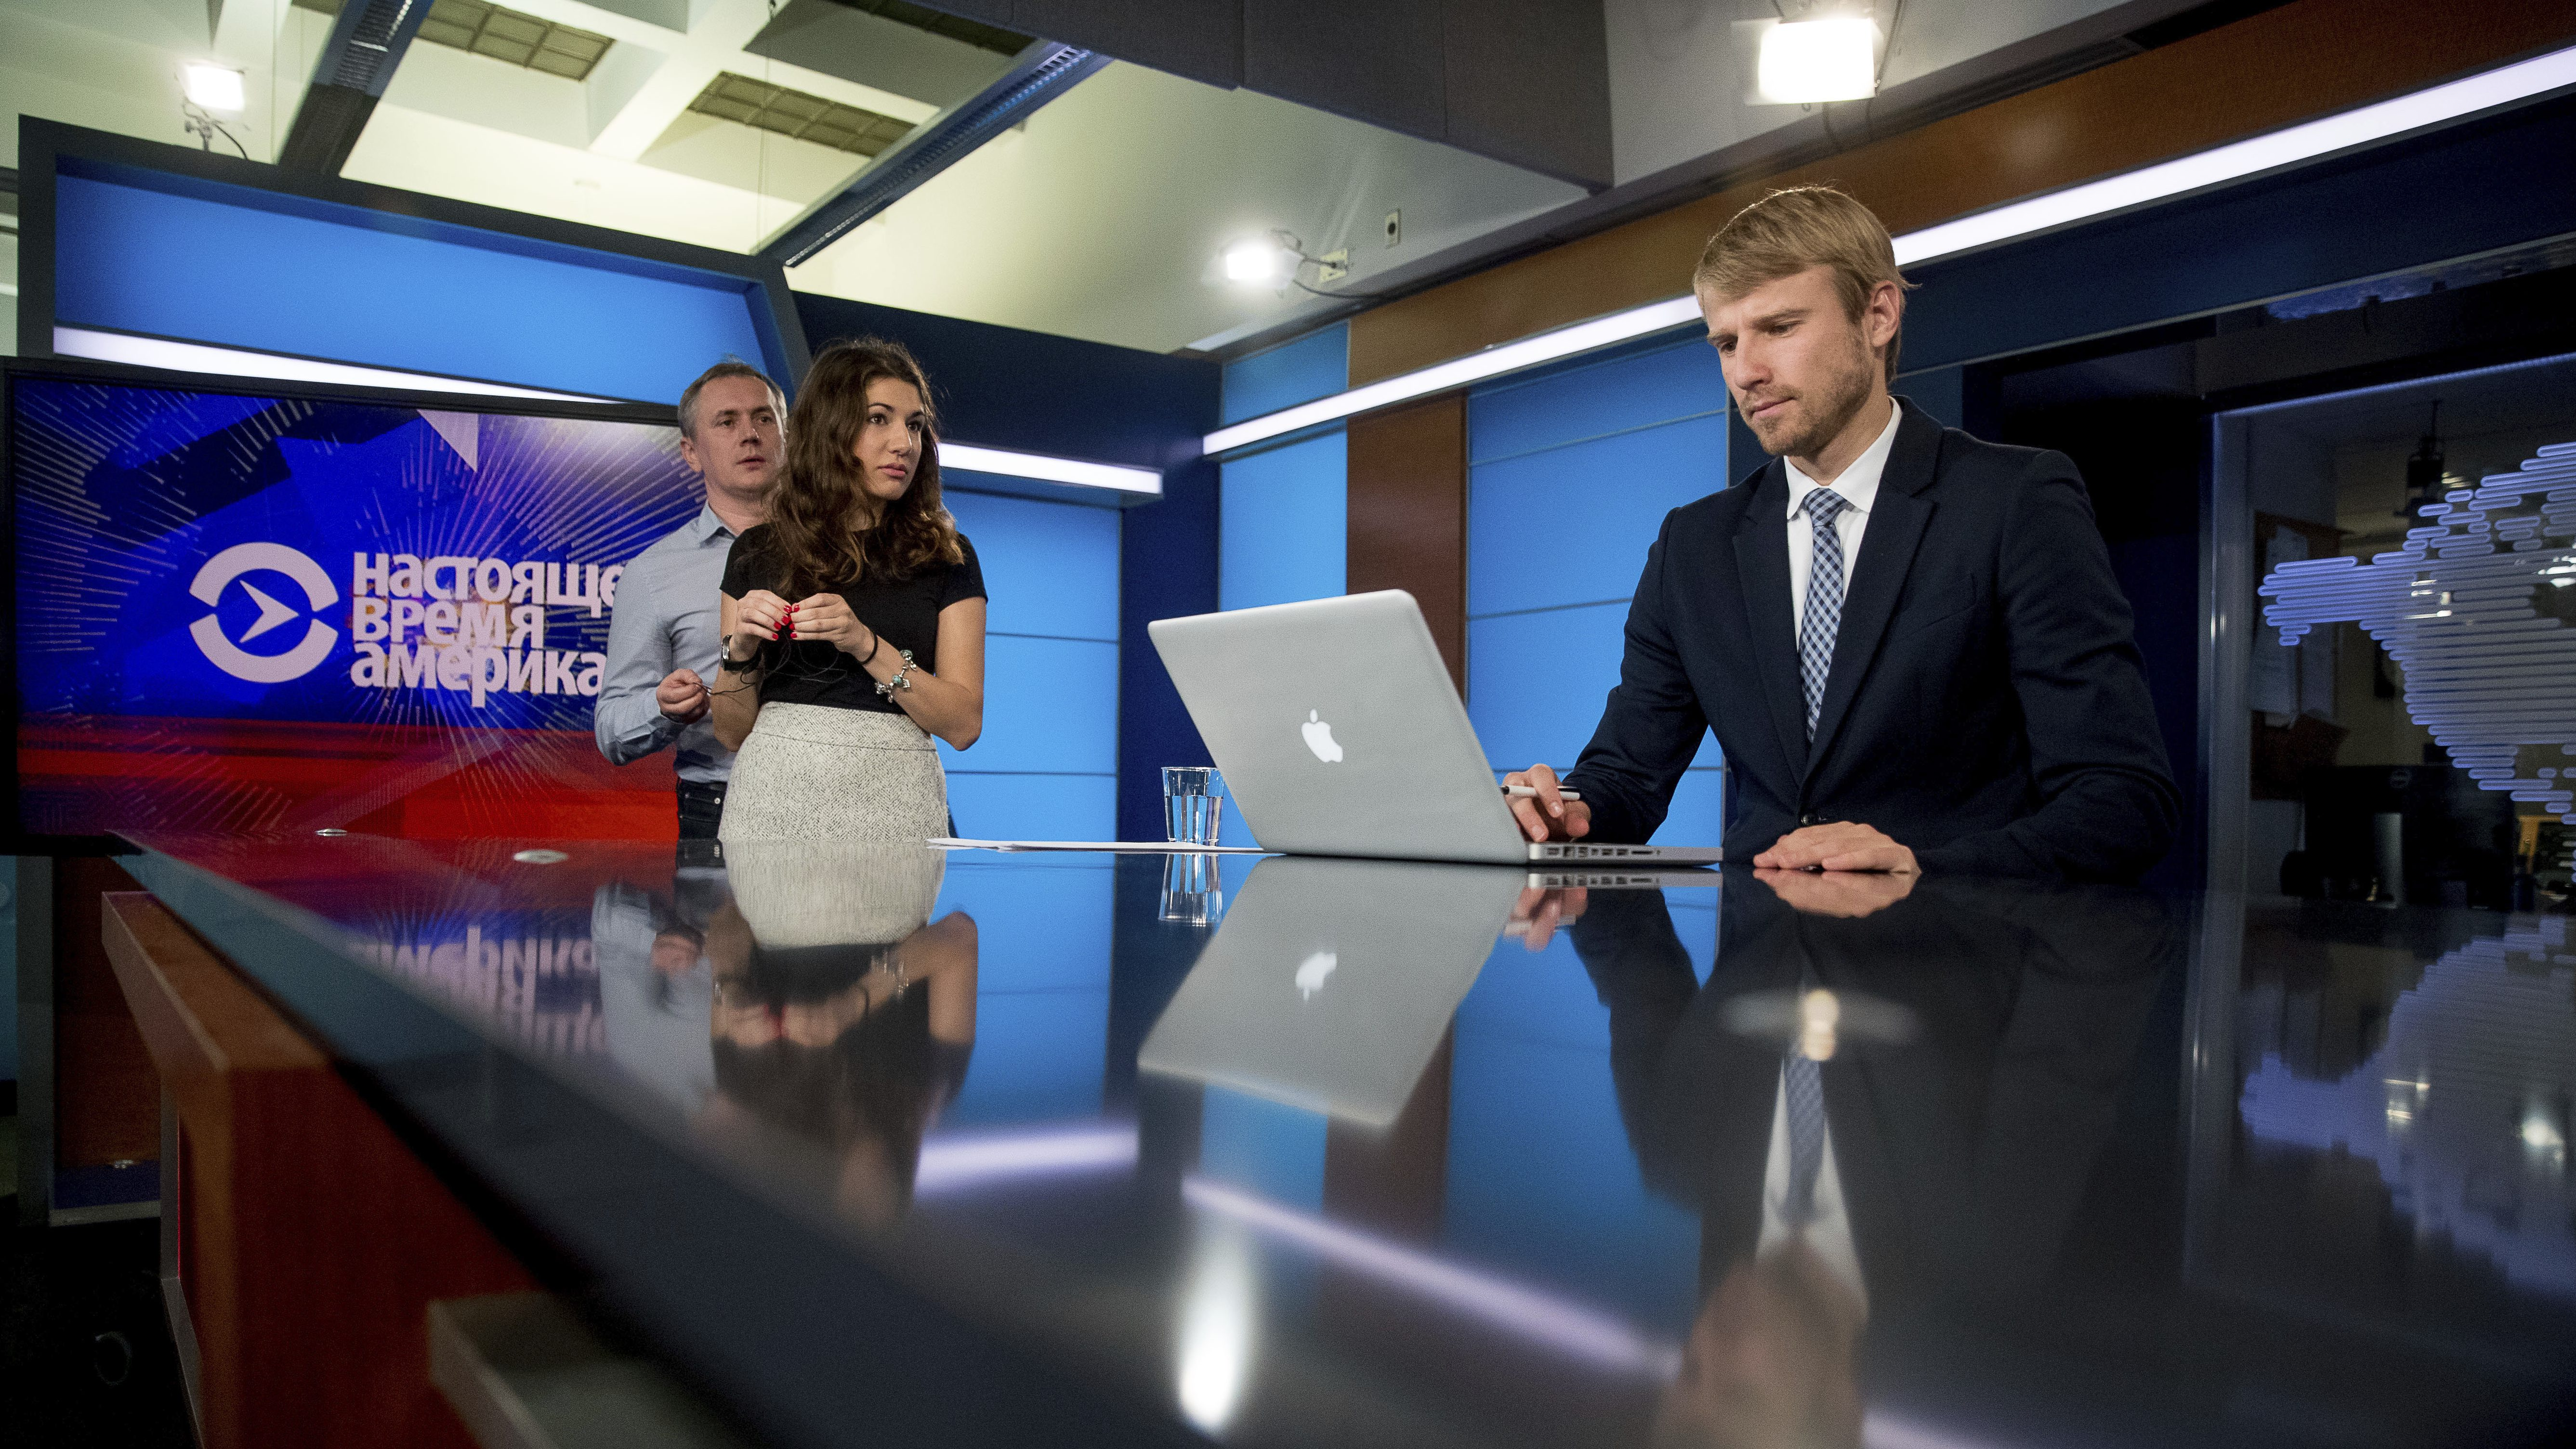 Current Time America news anchor Ihar Tsikhanenko, right, prepares for a broadcast in the offices of Voice of America in Washington, Wednesday, Feb. 8, 2017. Two U.S. government-funded news outlets are launching Current Time, a global Russian-language TV network aimed at providing an alternative to slick, Kremlin-controlled media that critics say spread propaganda and misinformation​. (AP Photo/Andrew Harnik)